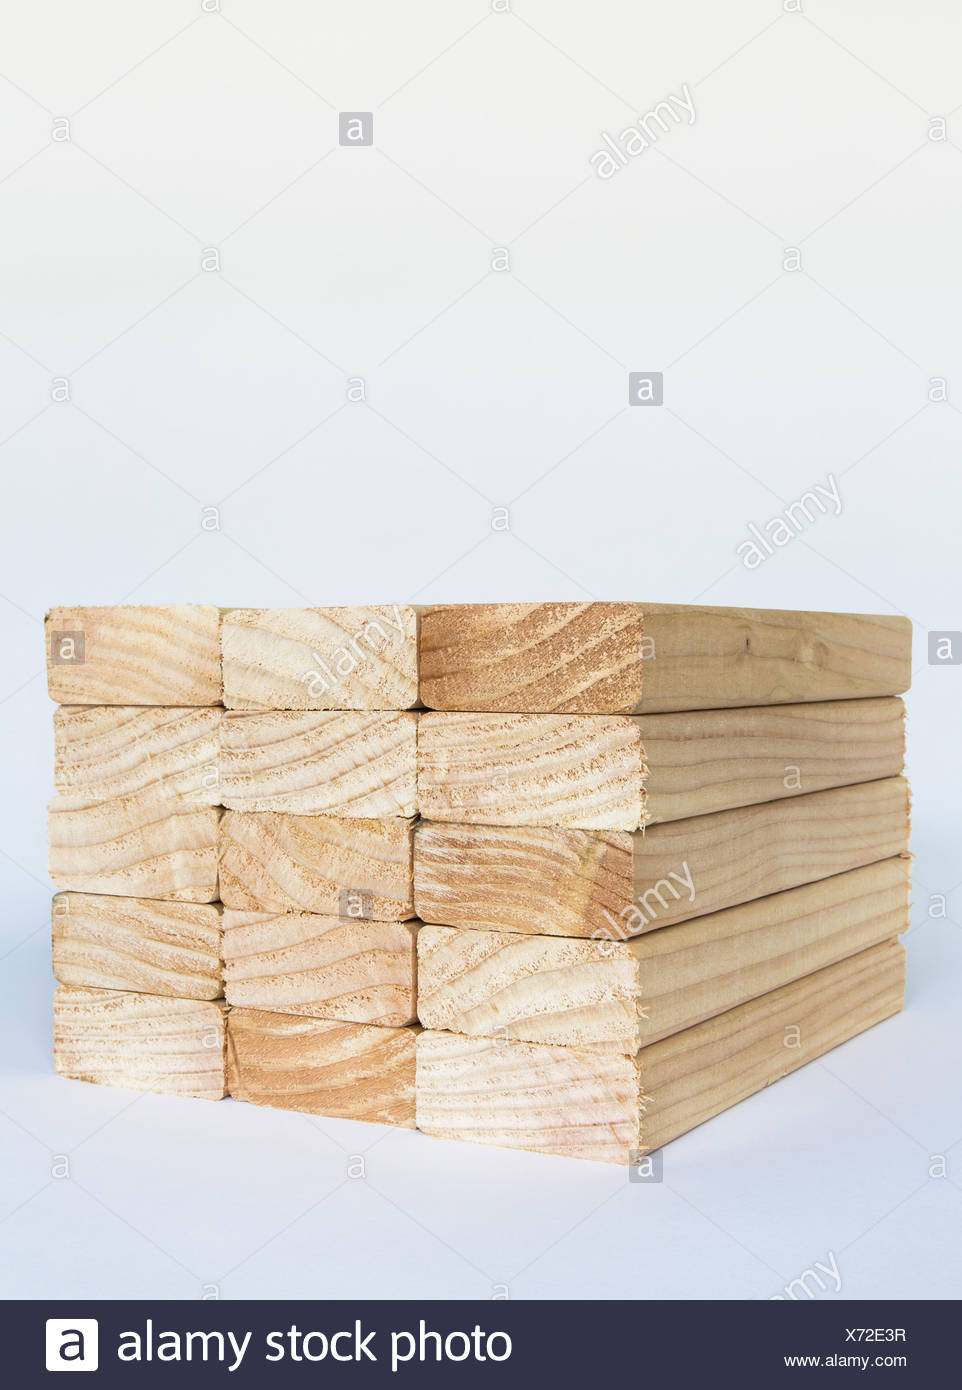 Construction timber stock photos